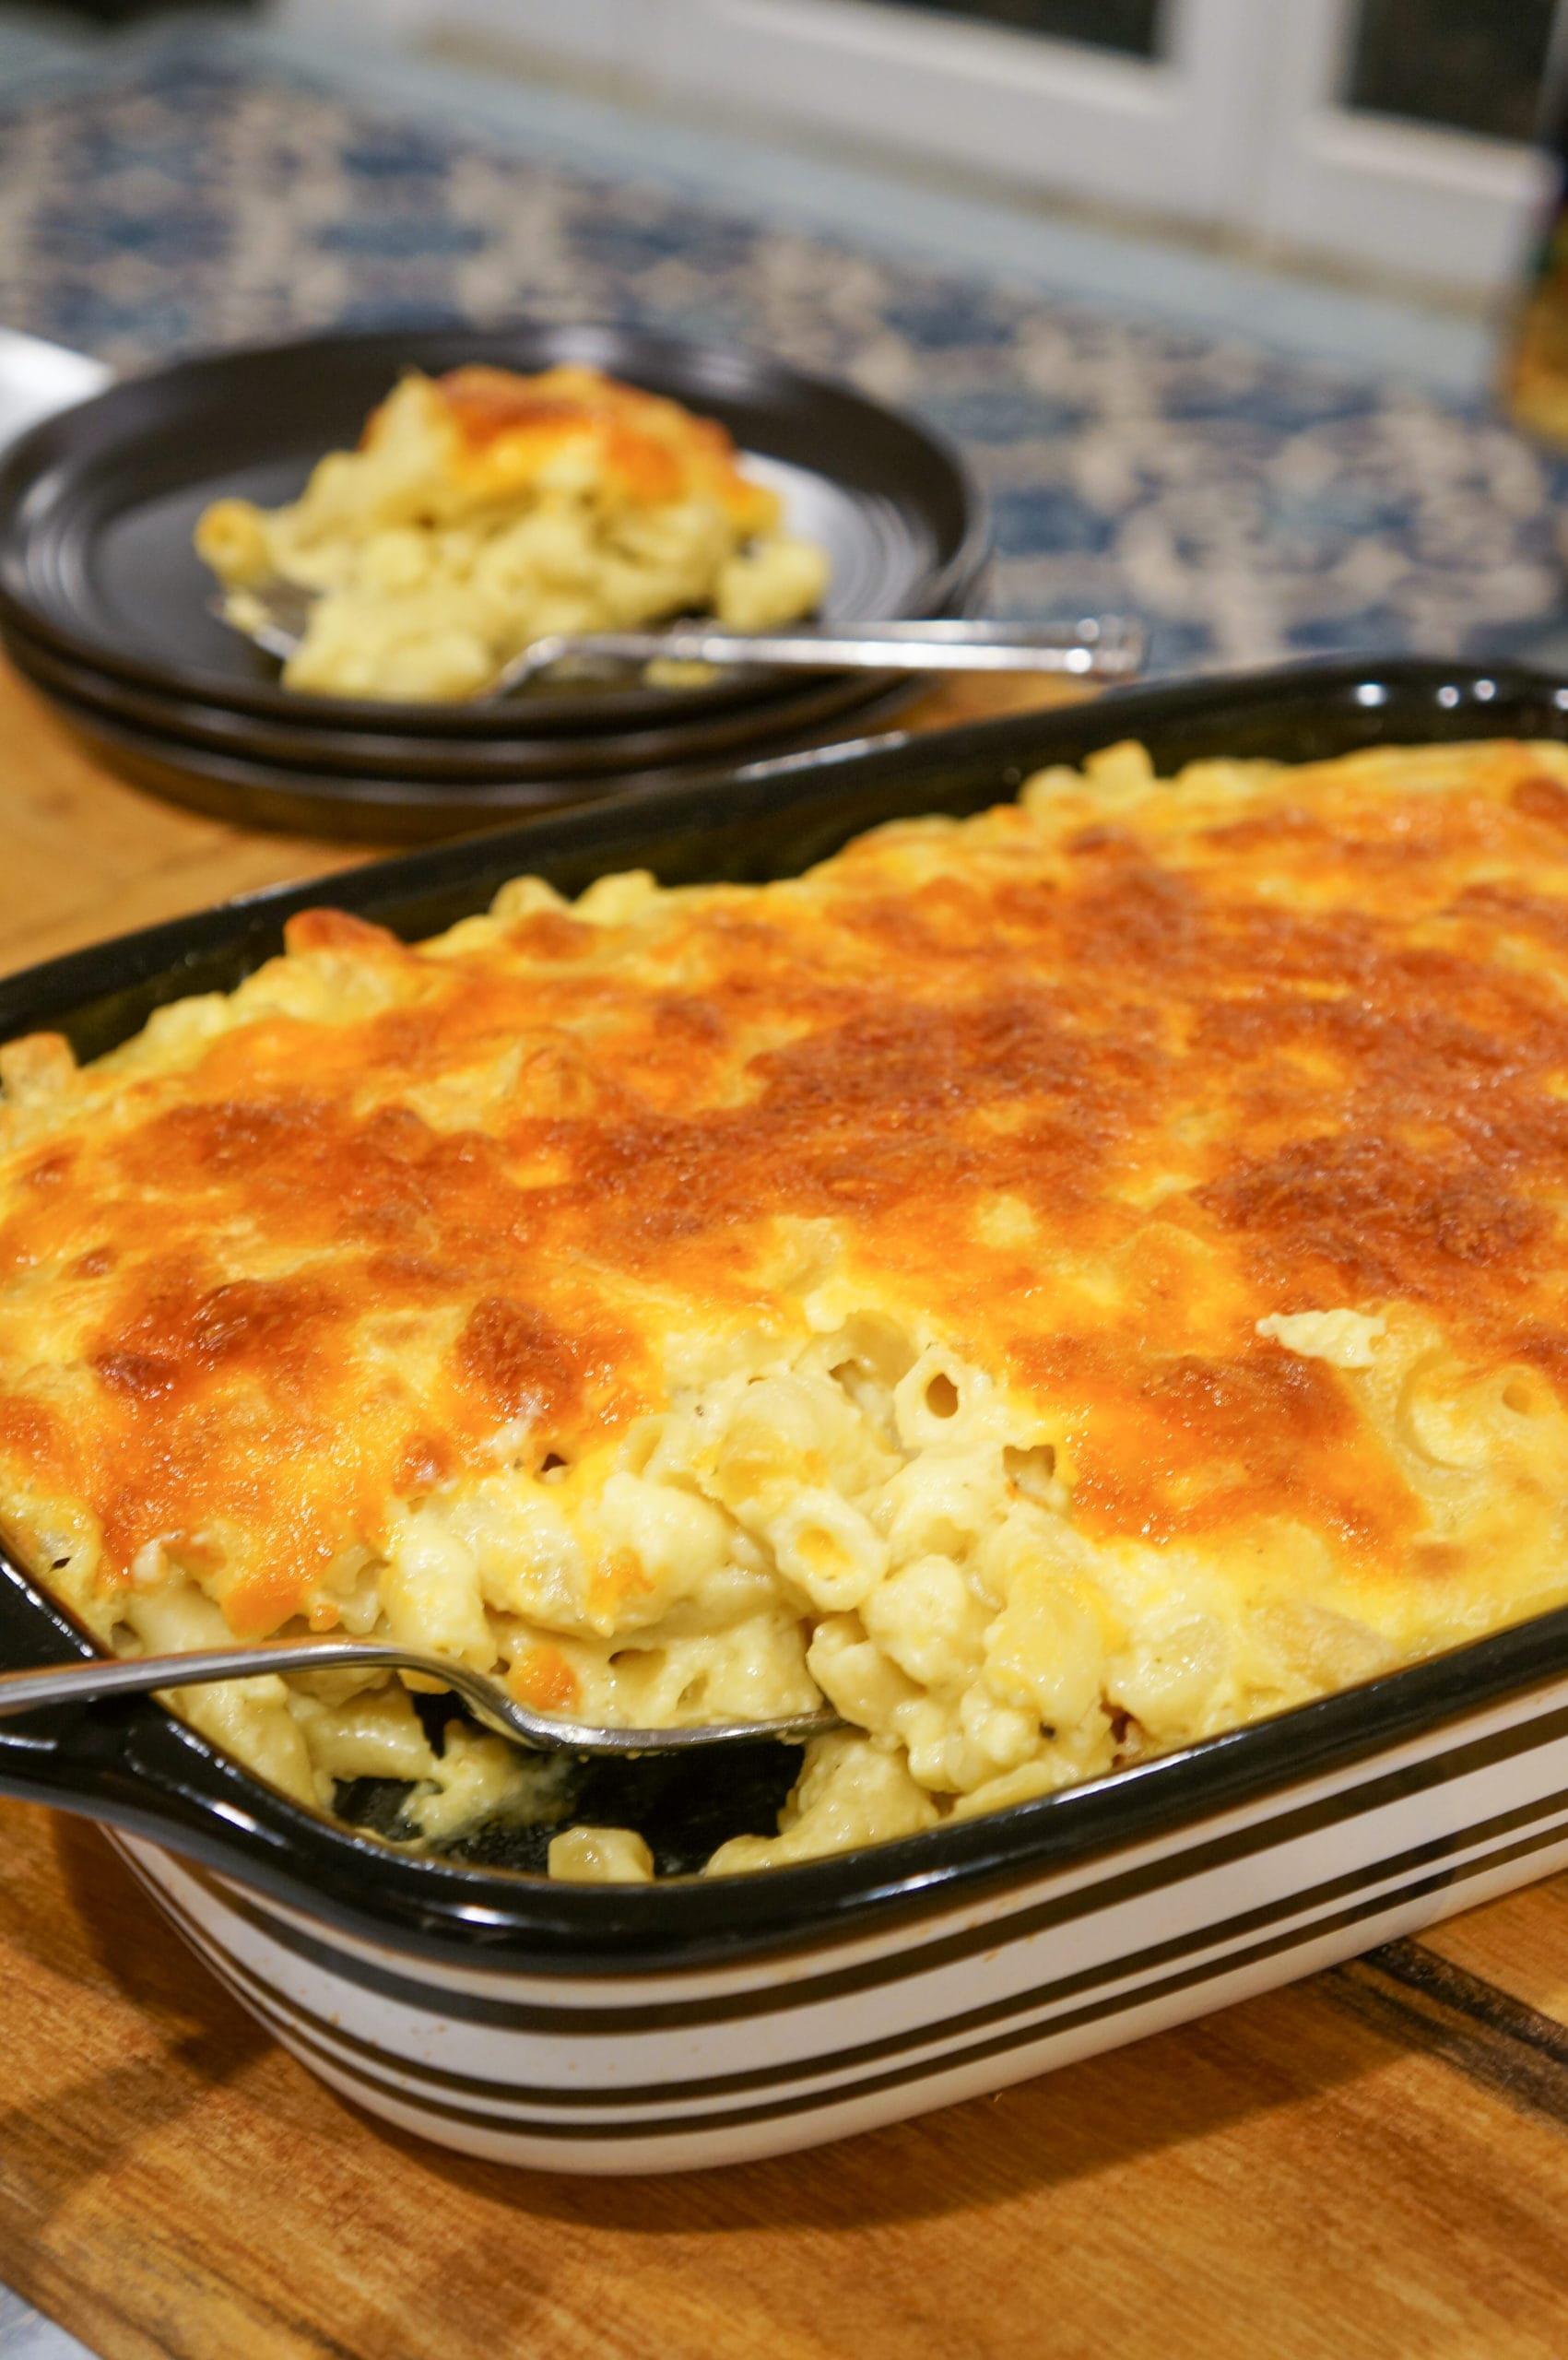 King's Family Mac & Cheese recipe